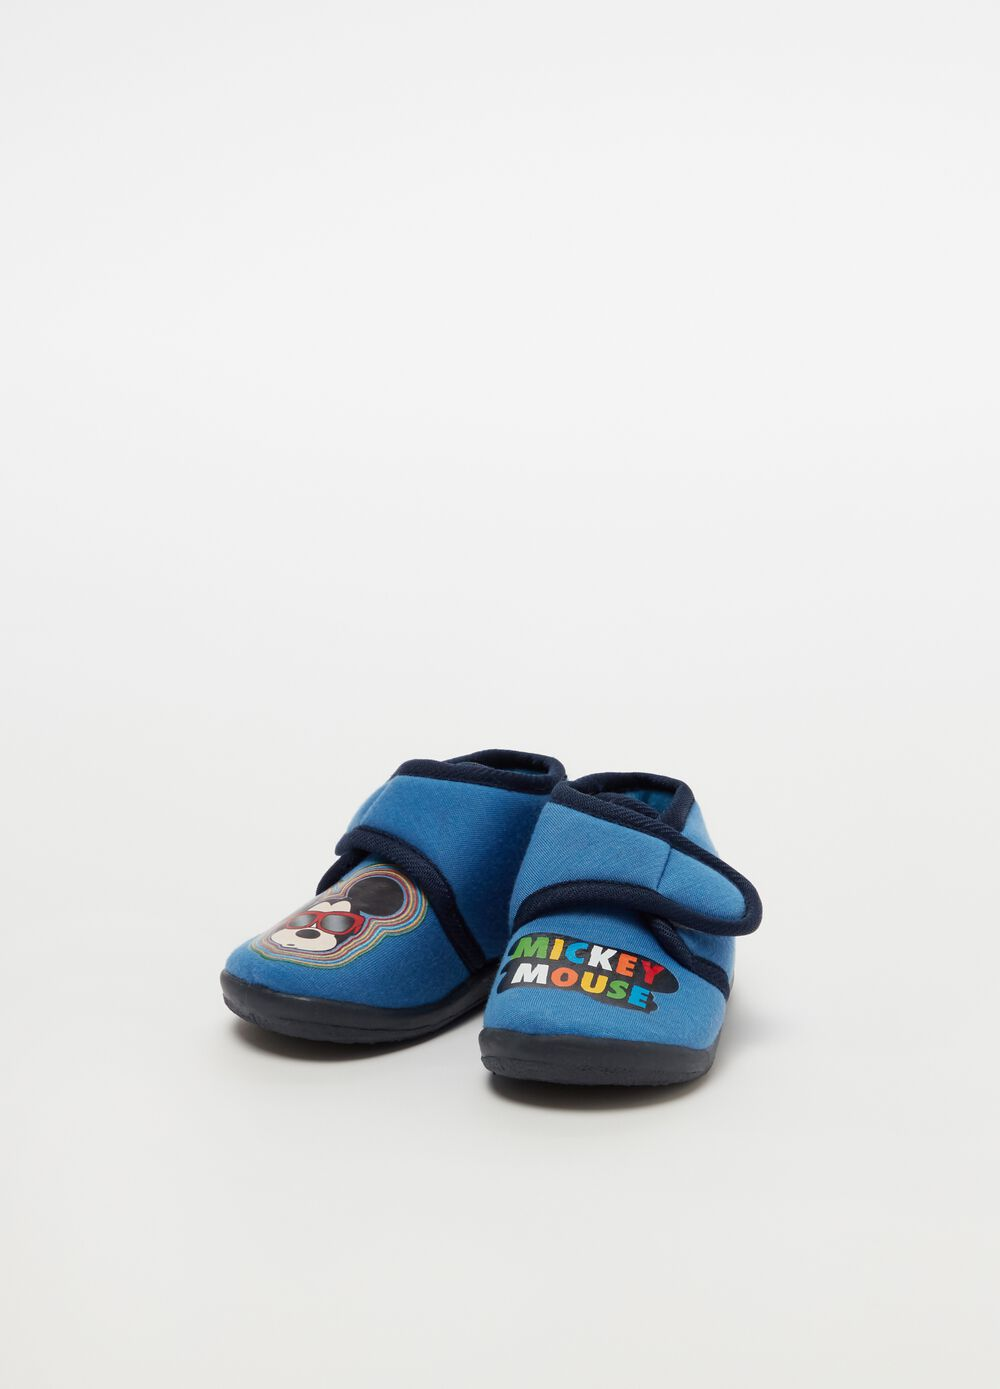 Two-tone slippers with Disney Mickey Mouse print